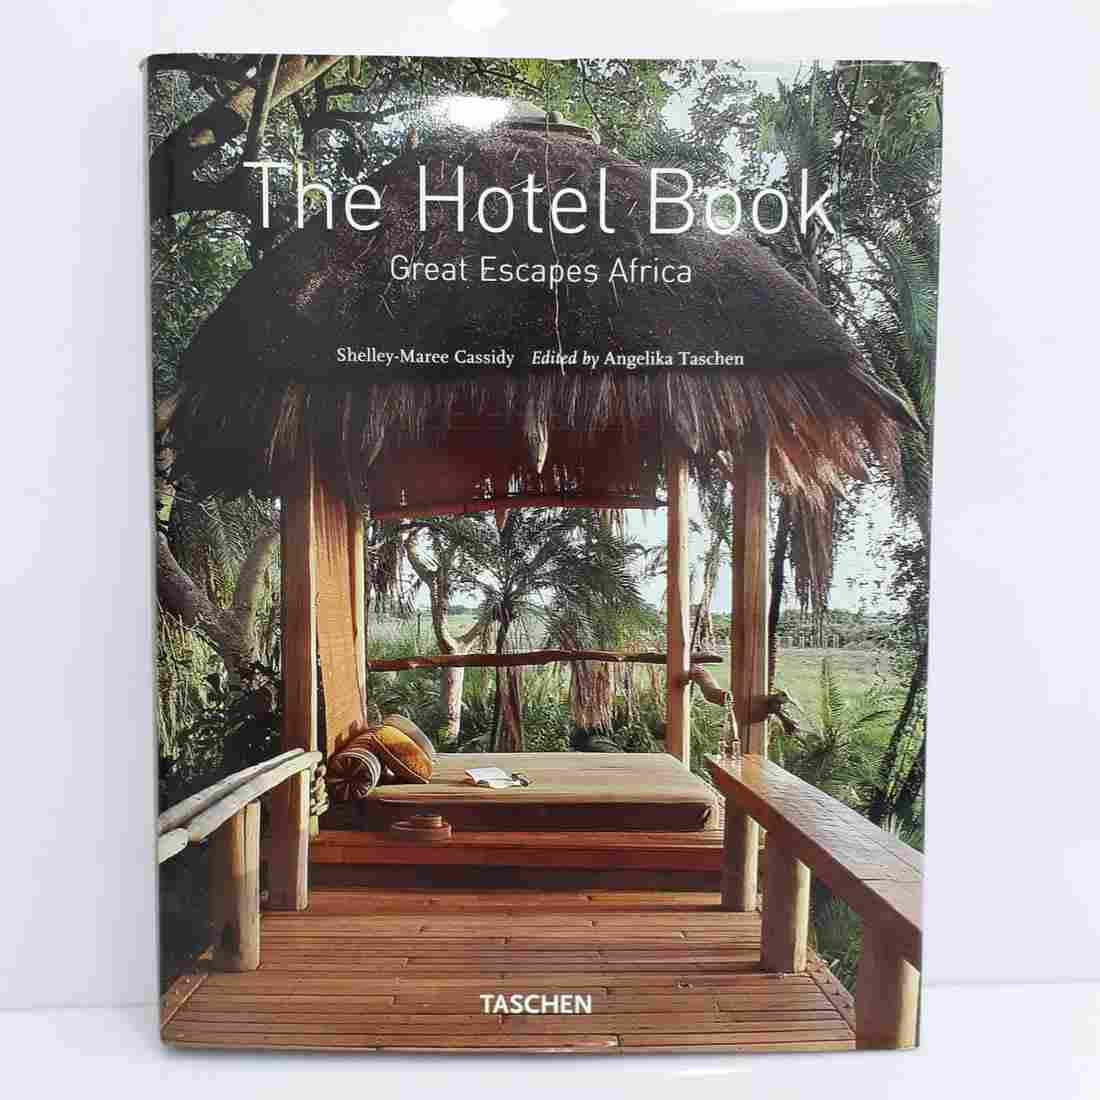 THE HOTEL BOOK GREAT ESCAPE AFRICA